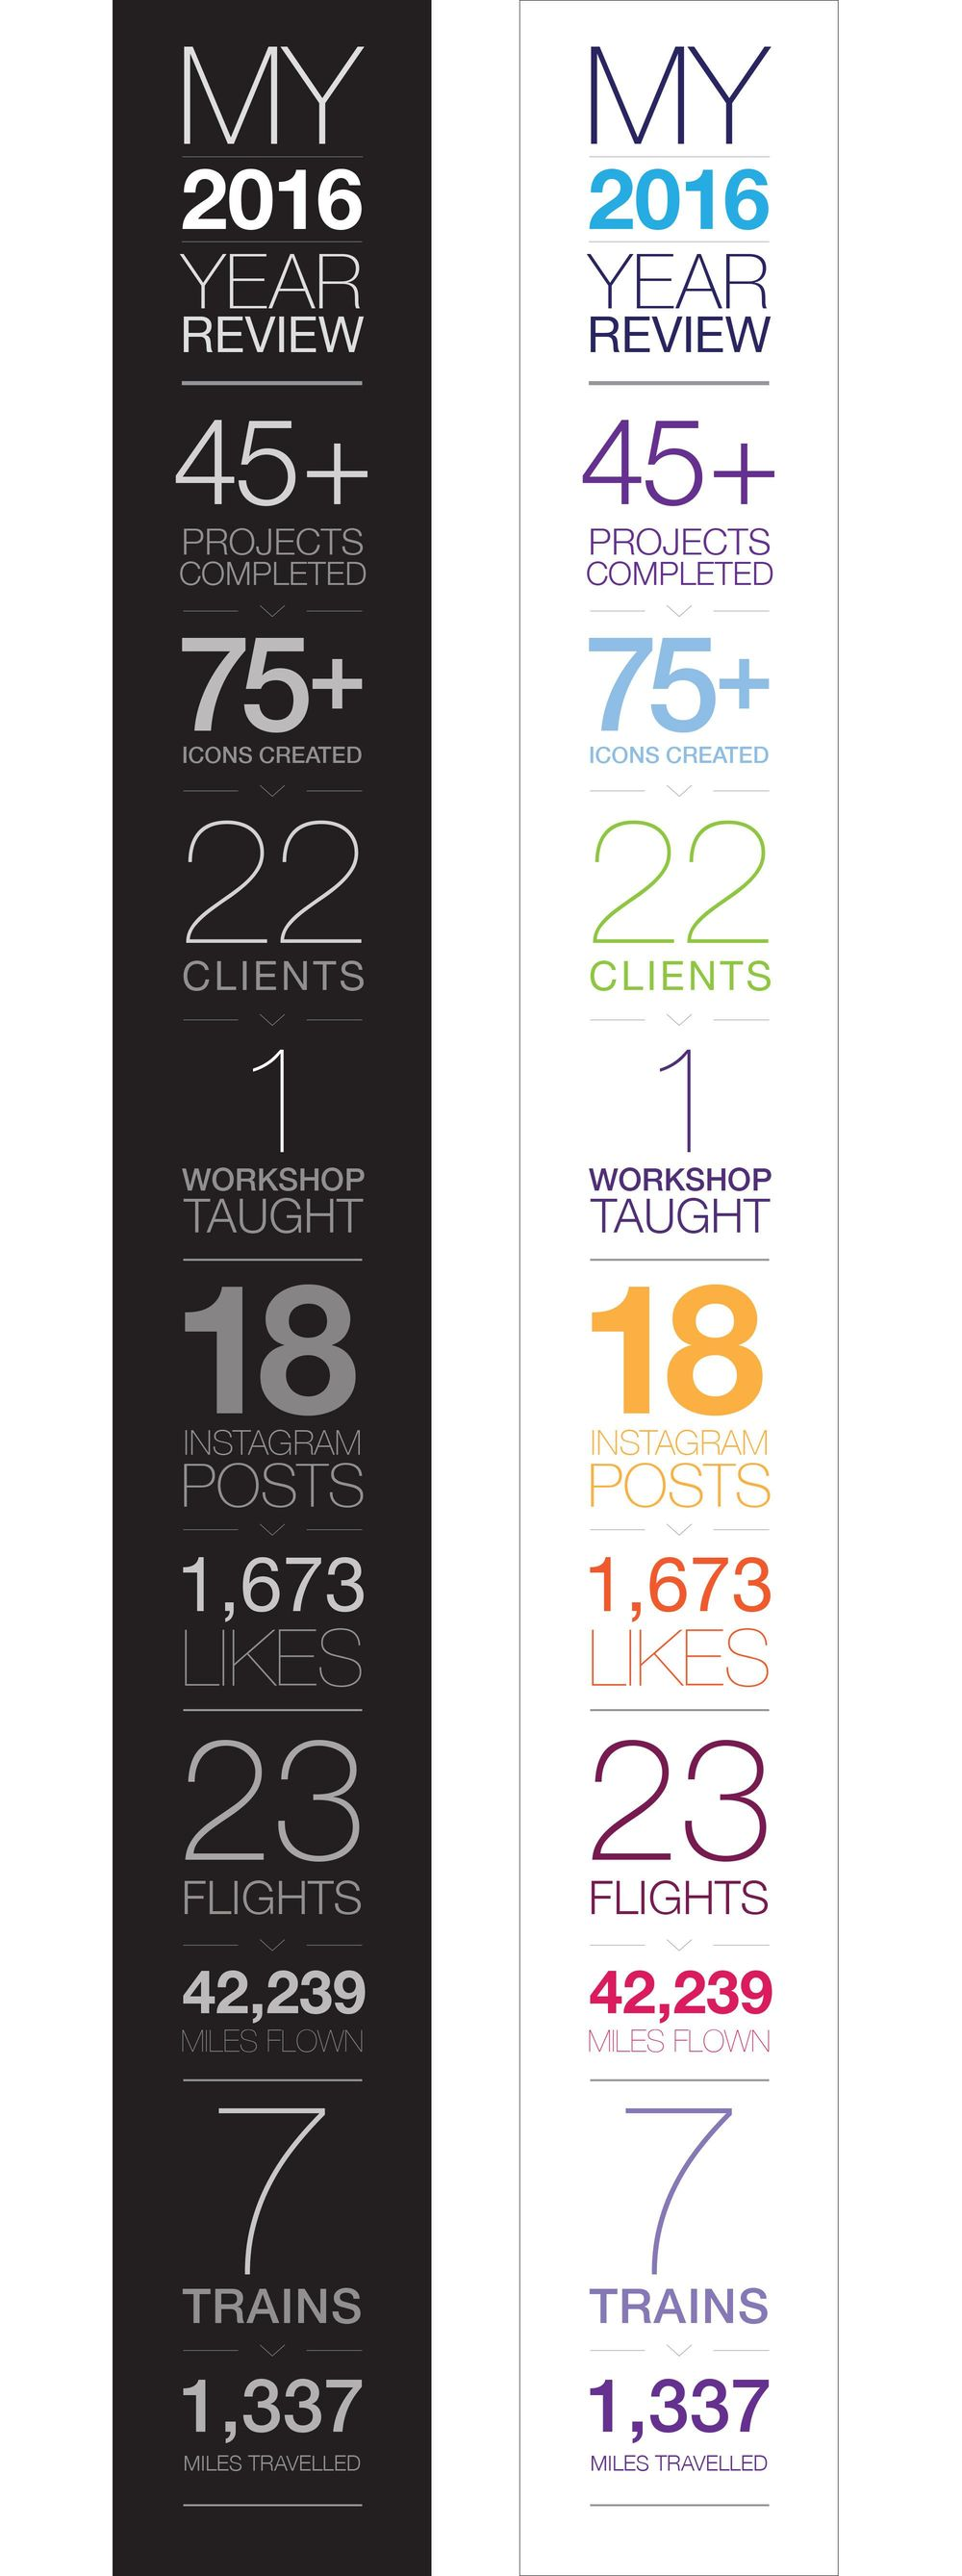 Year in Review: Summary Infographics - image 2 - student project